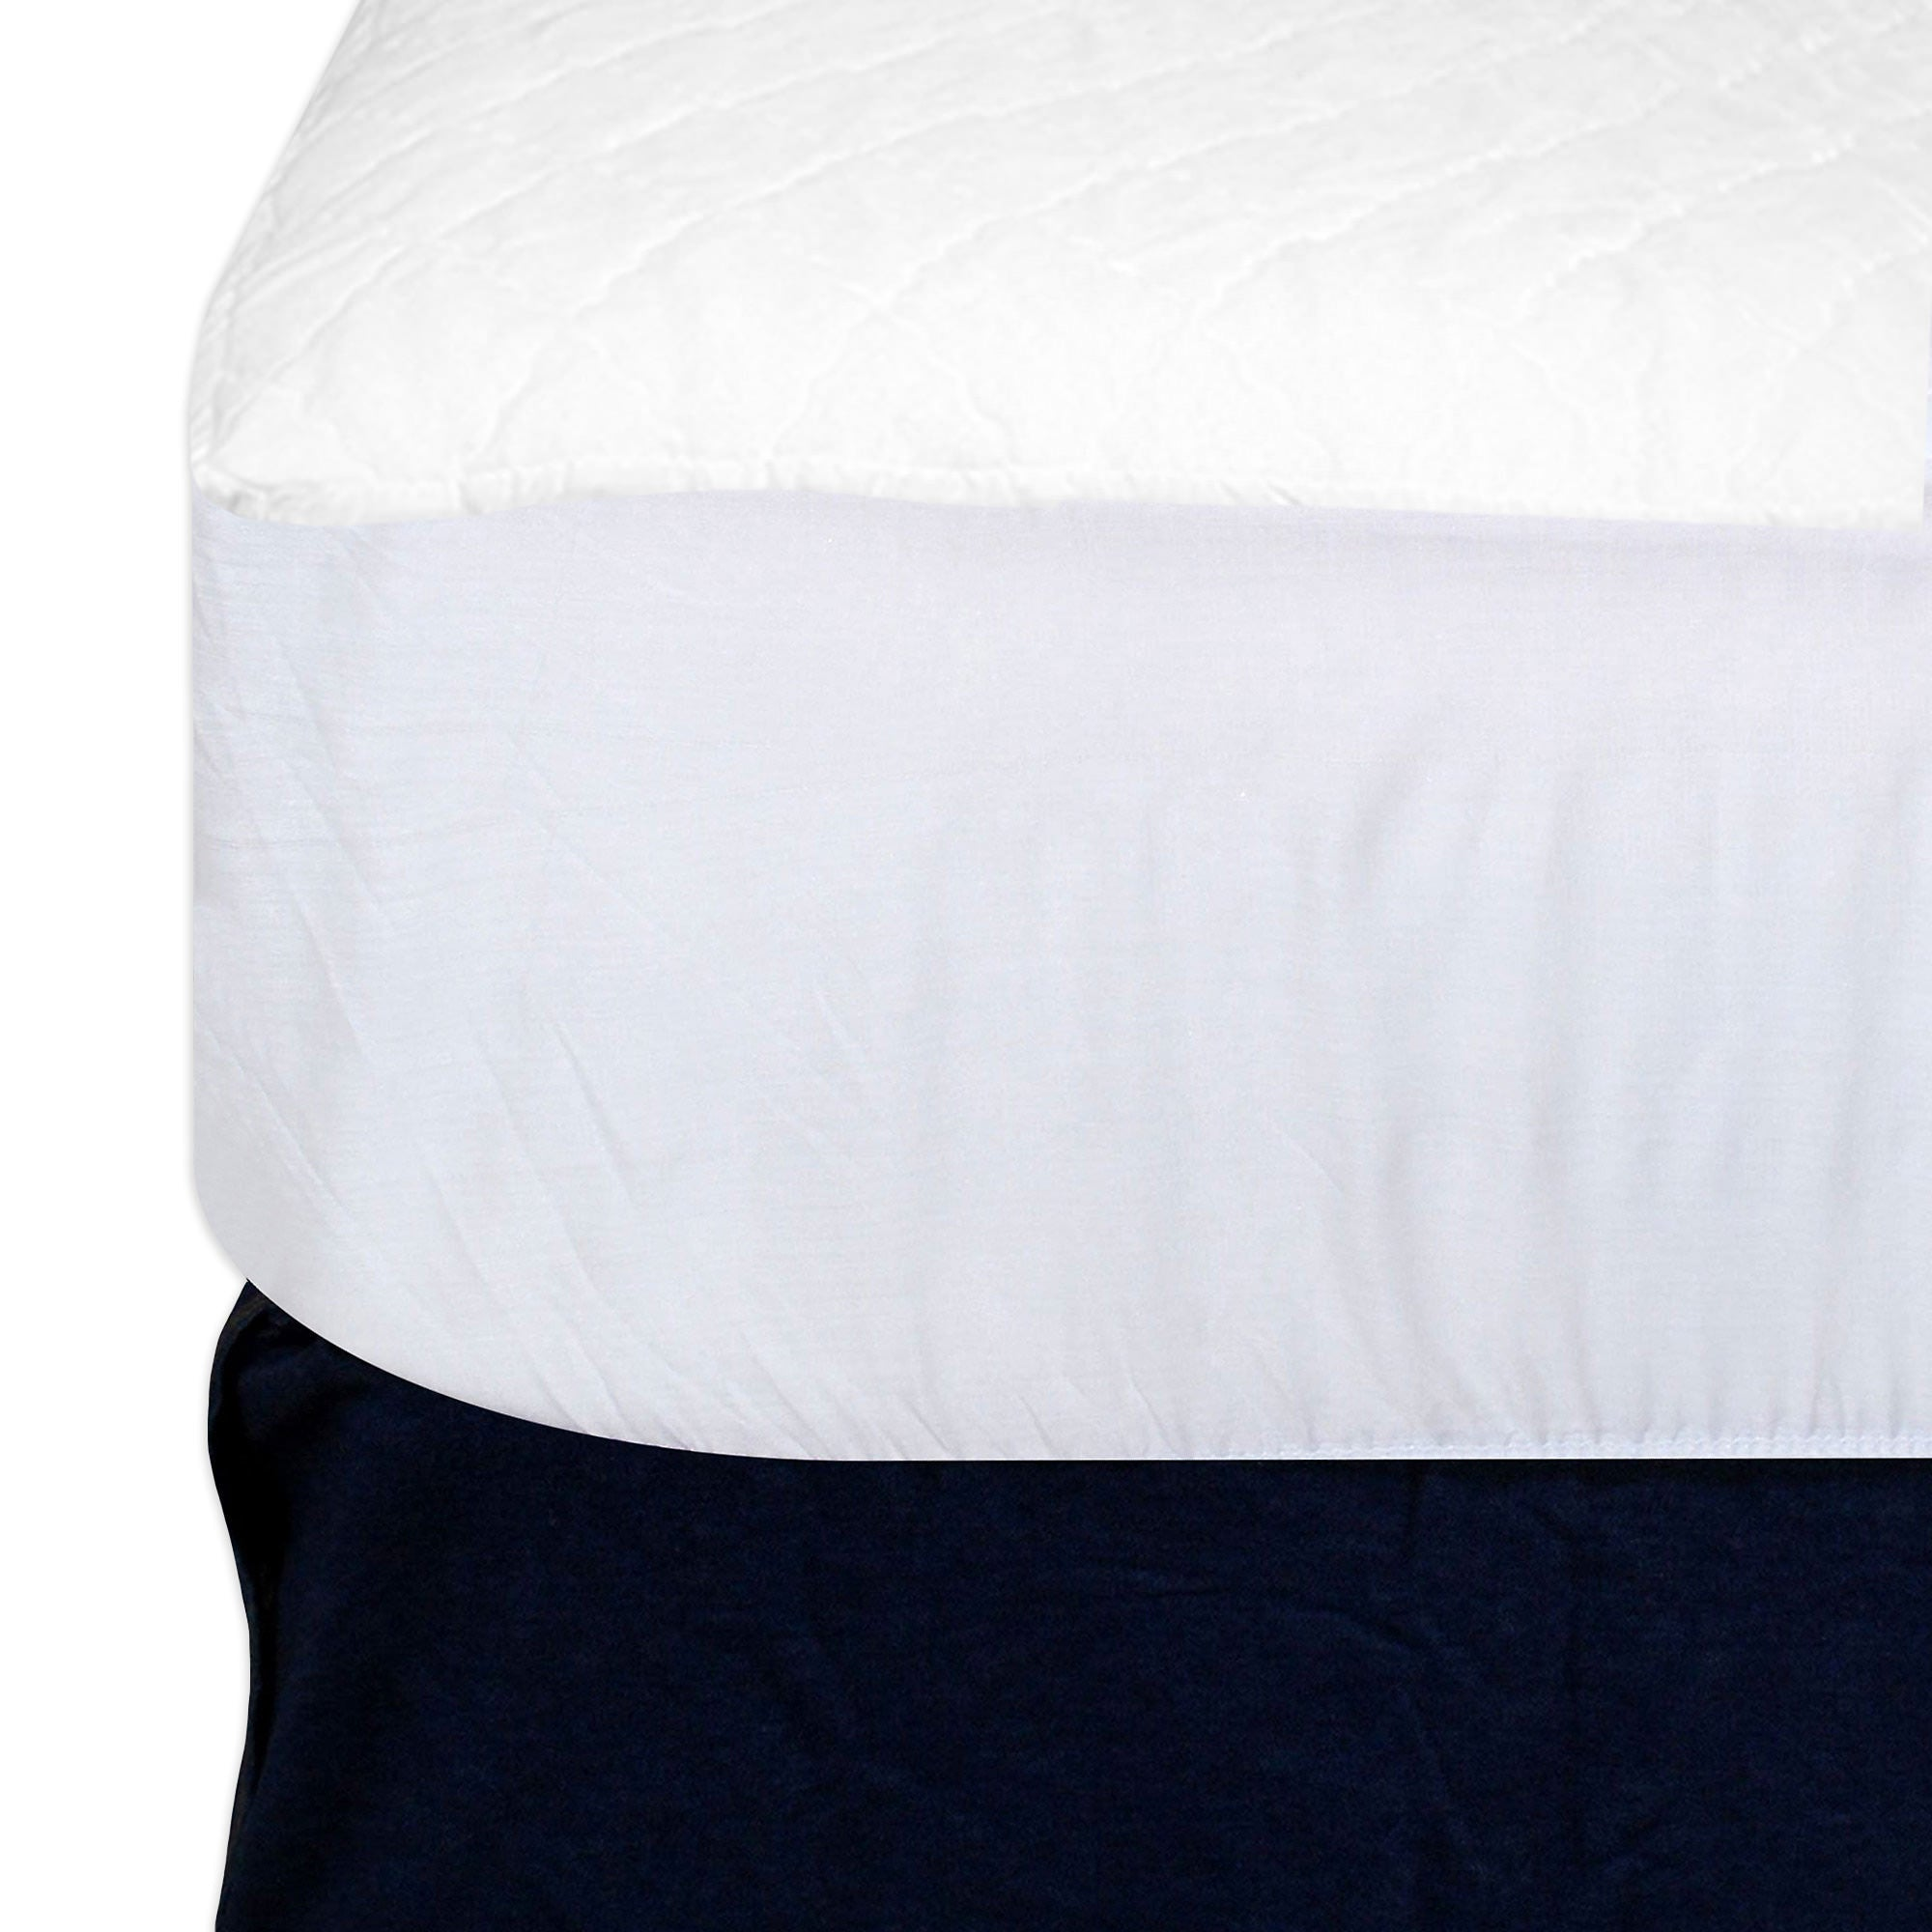 Mattress Pads-Dry Defender Waterproof Mattress Pad (Fitted)